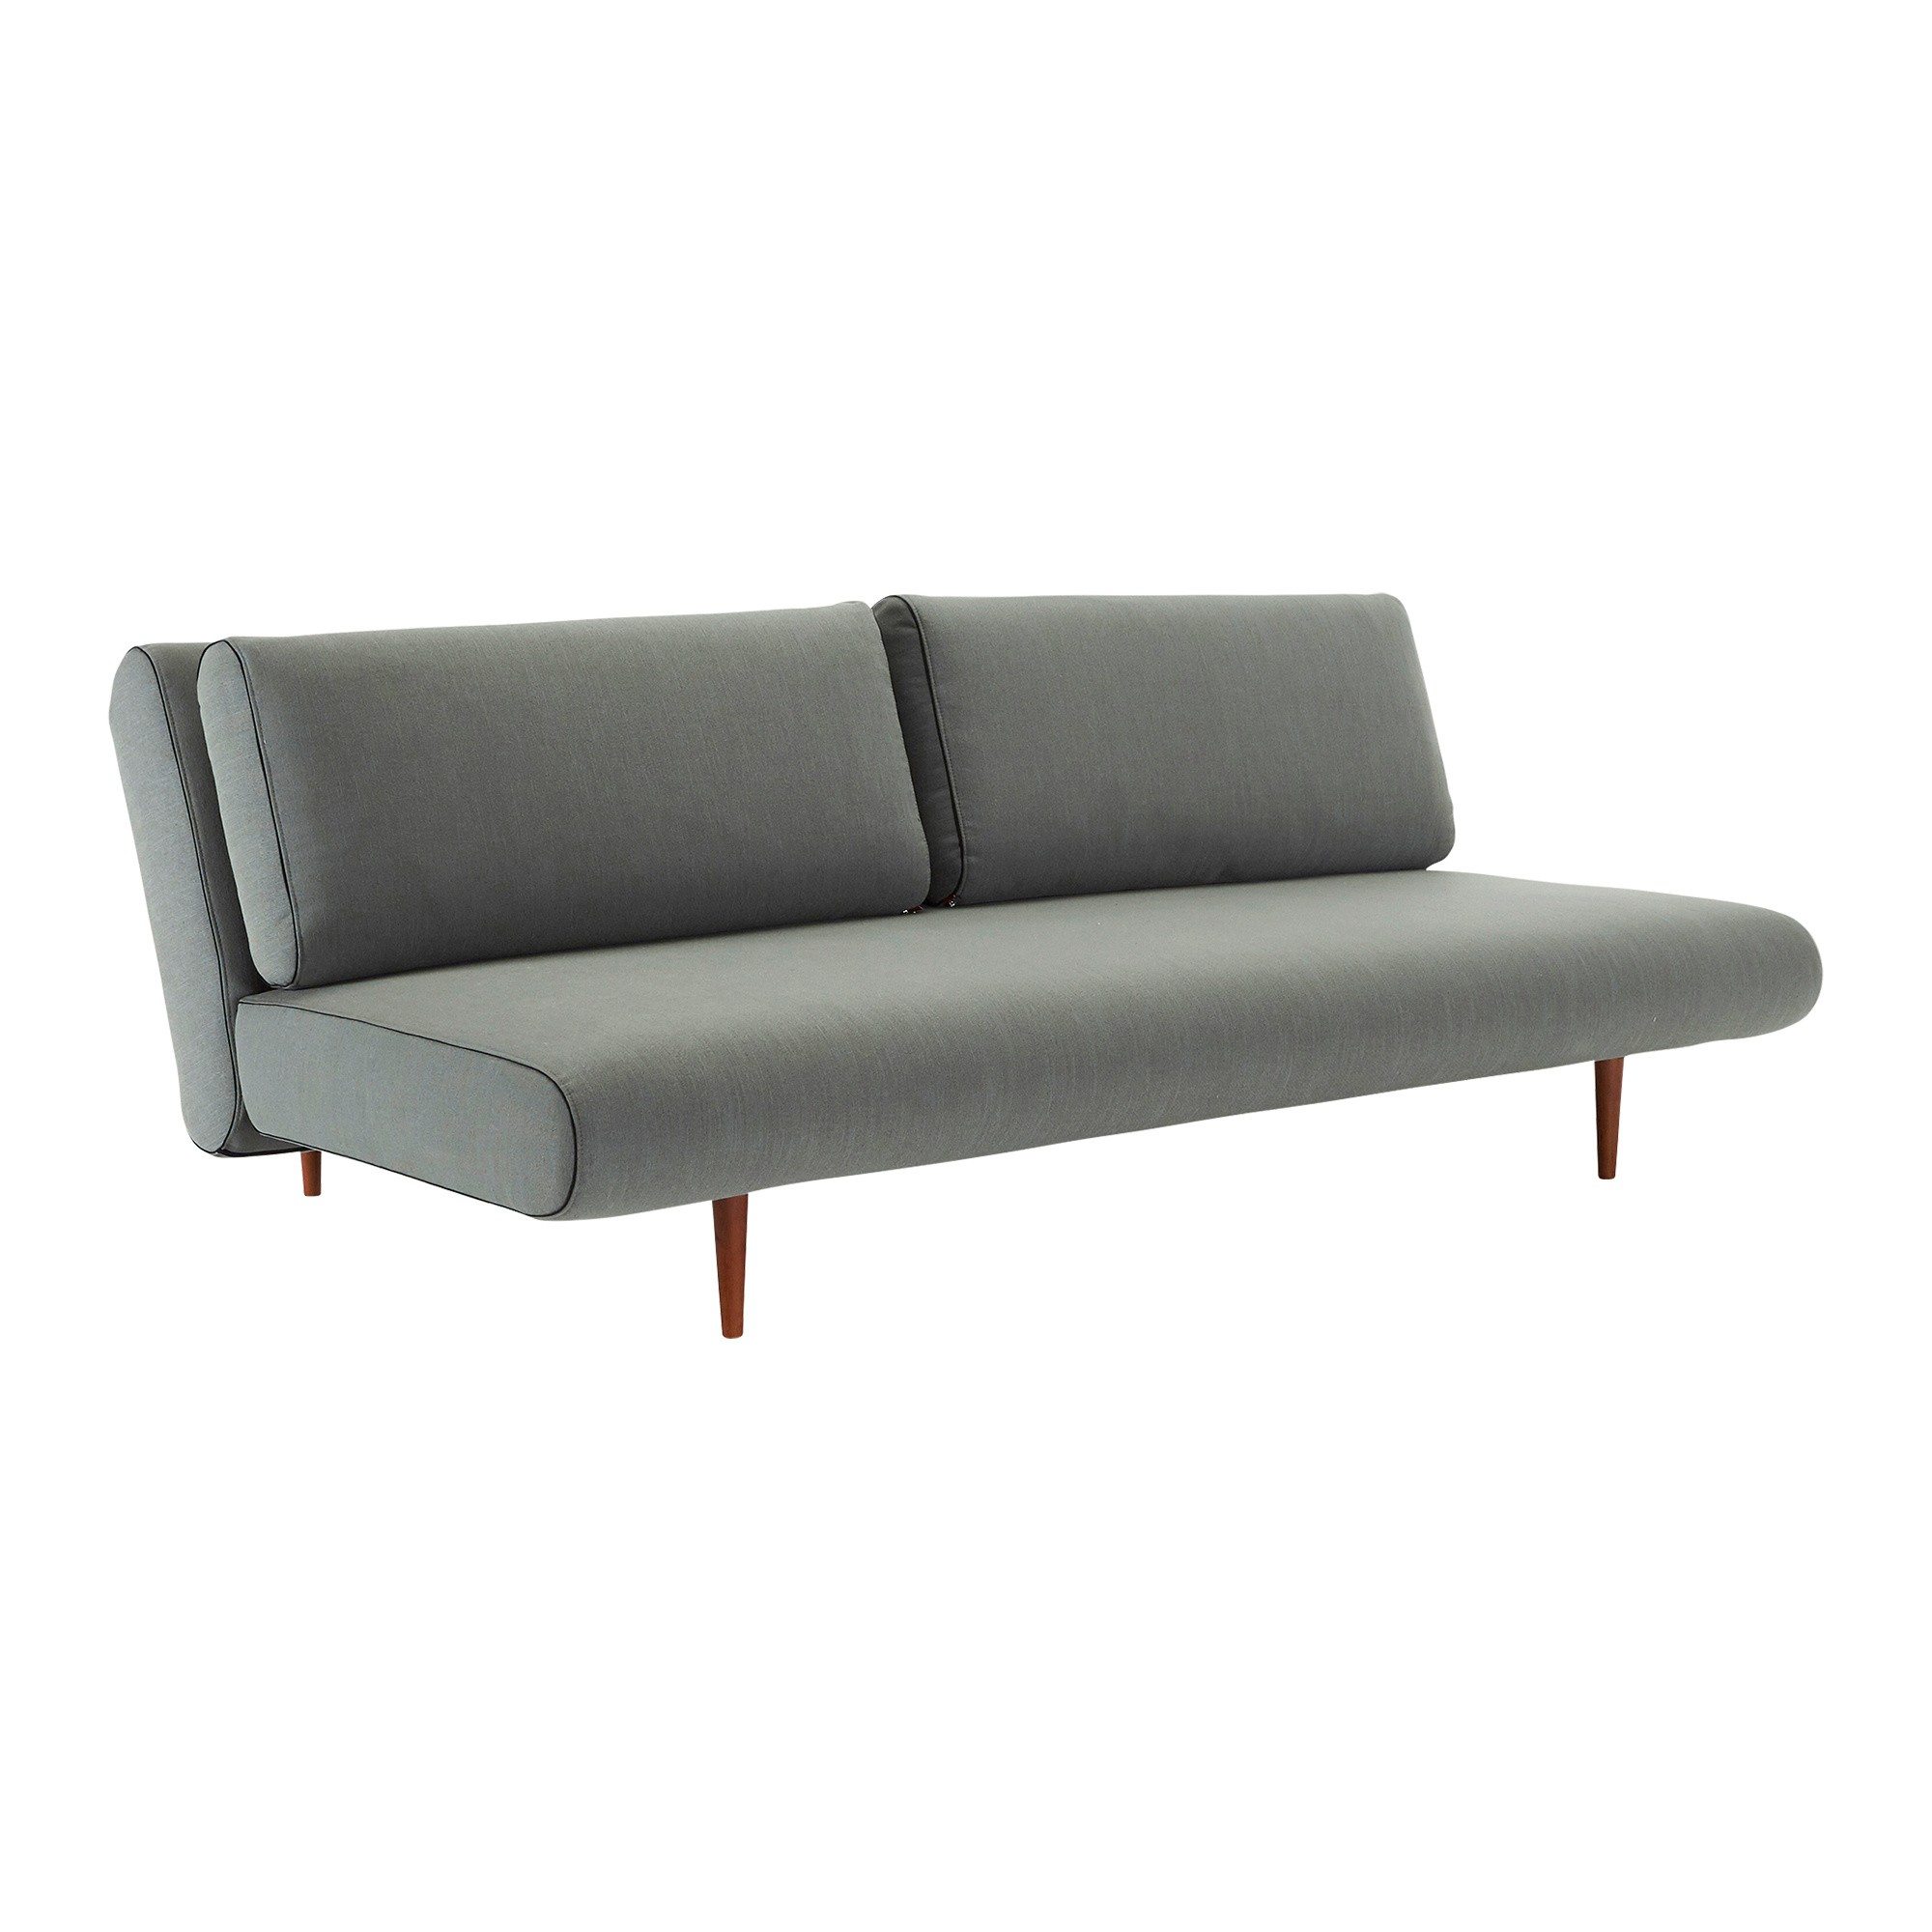 Picture of: Innovation Unfurl Lounger Sofa Bed 200x121cm Ambientedirect